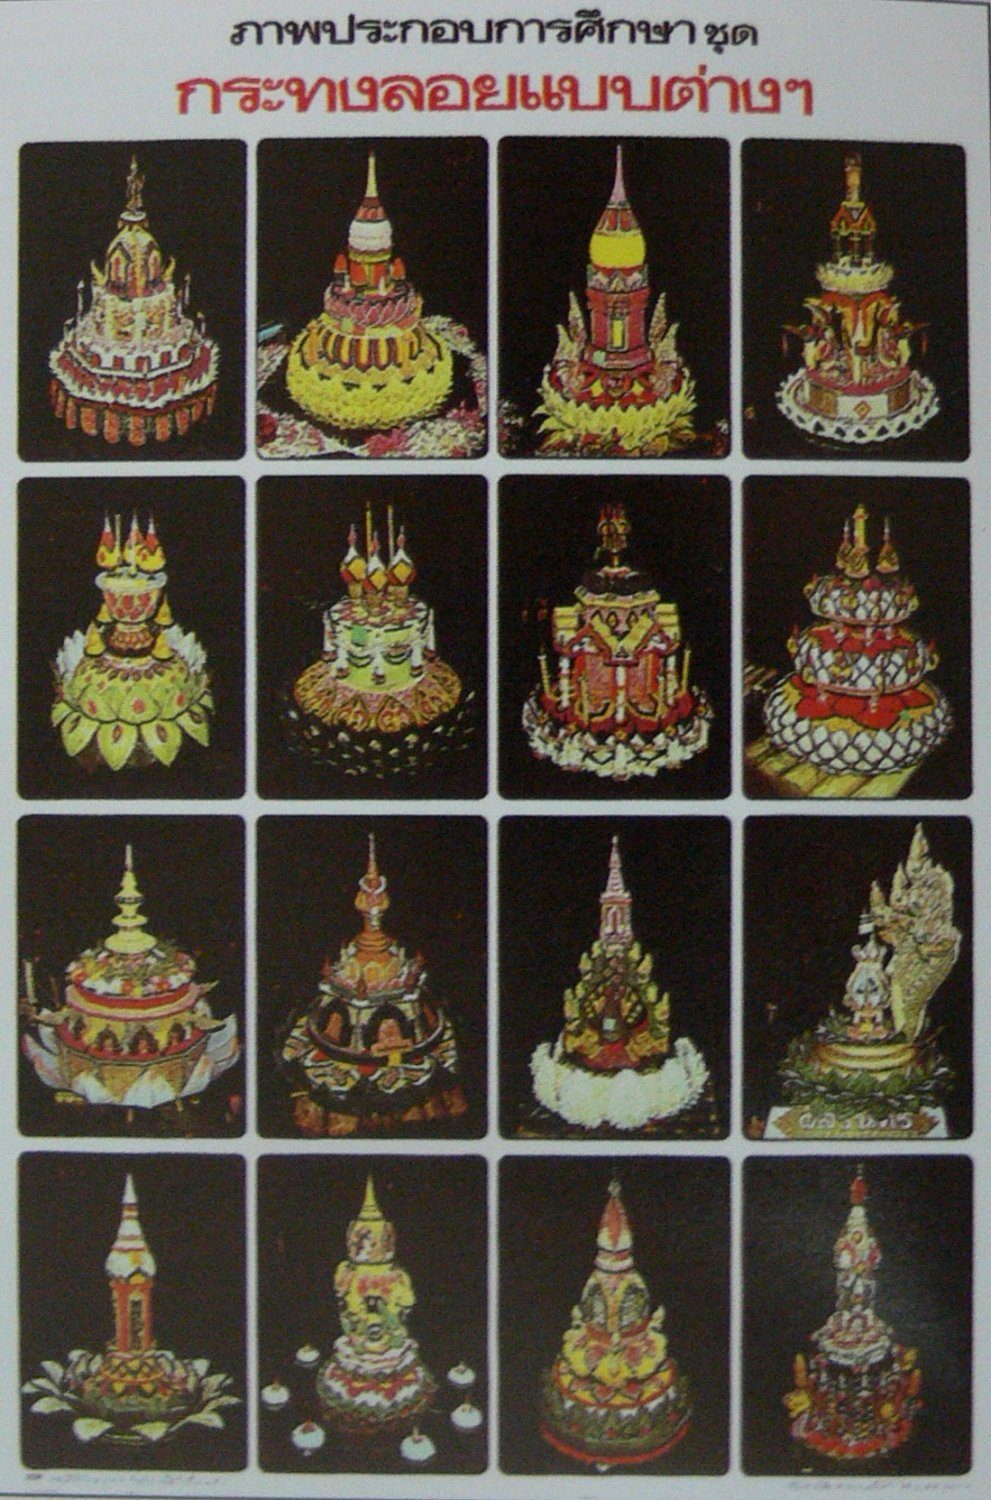 Thai Traditional Floating Basket Poster Education Collection Loy Kratong Gift